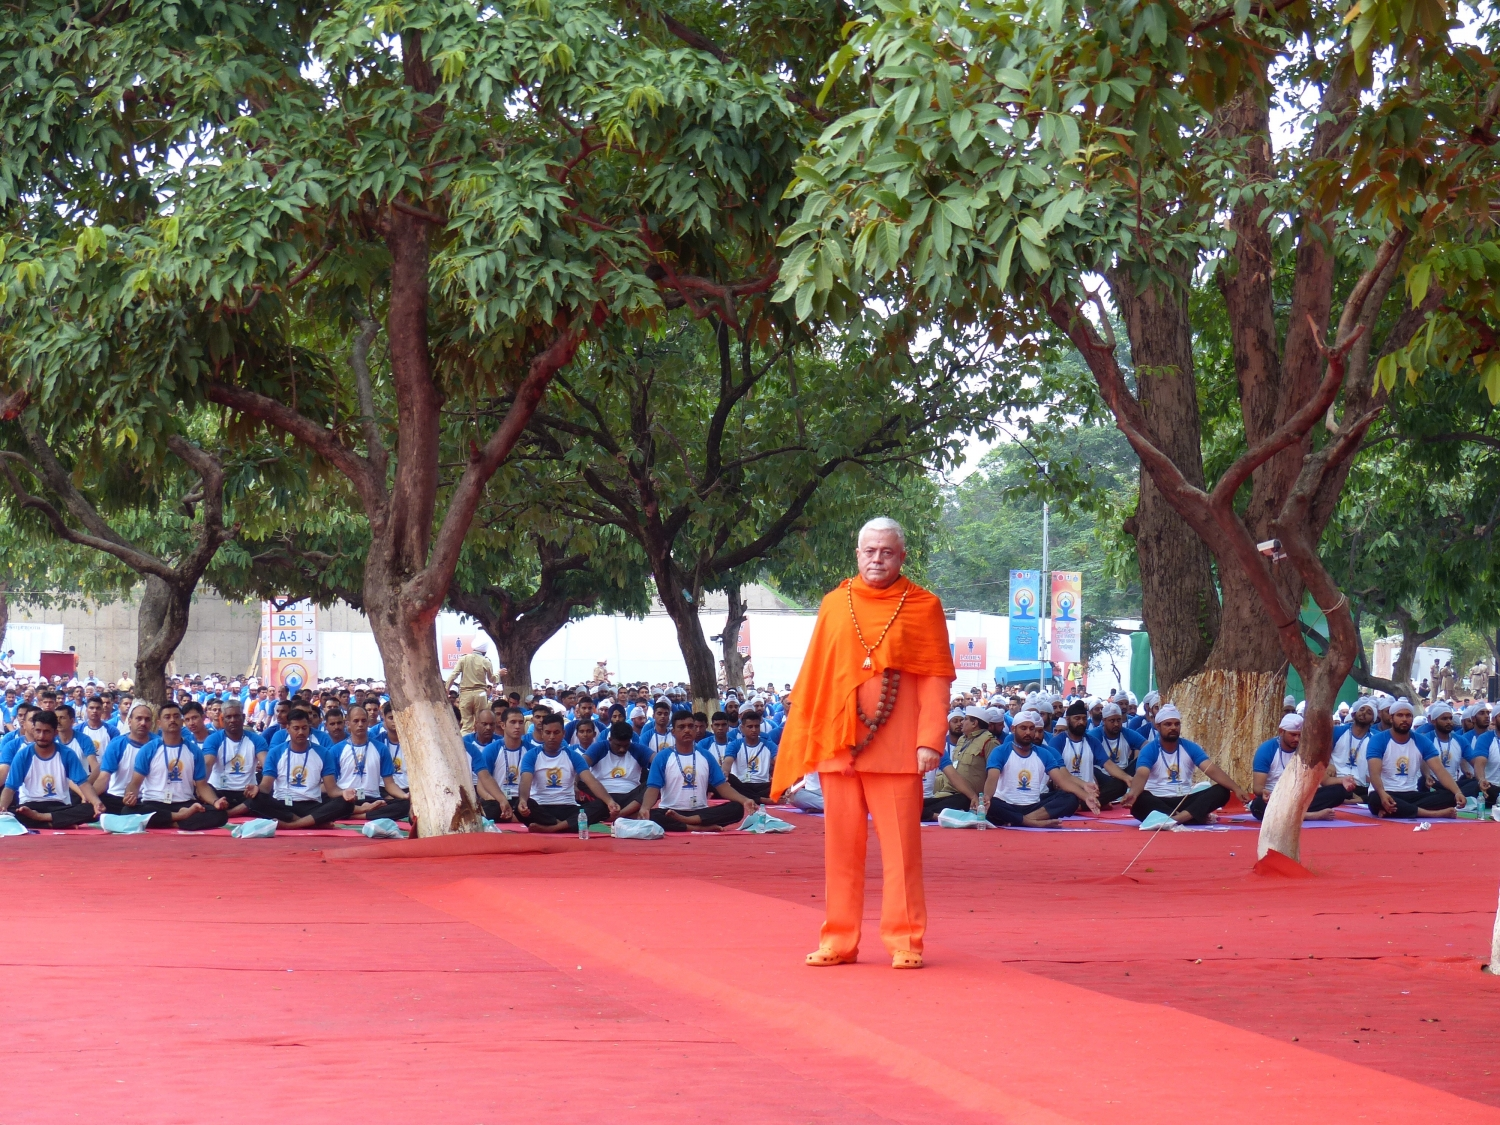 International Day of Yoga / IDY 2016 - Chandigarh, India - Dirigido por Shrí Narendra Modi